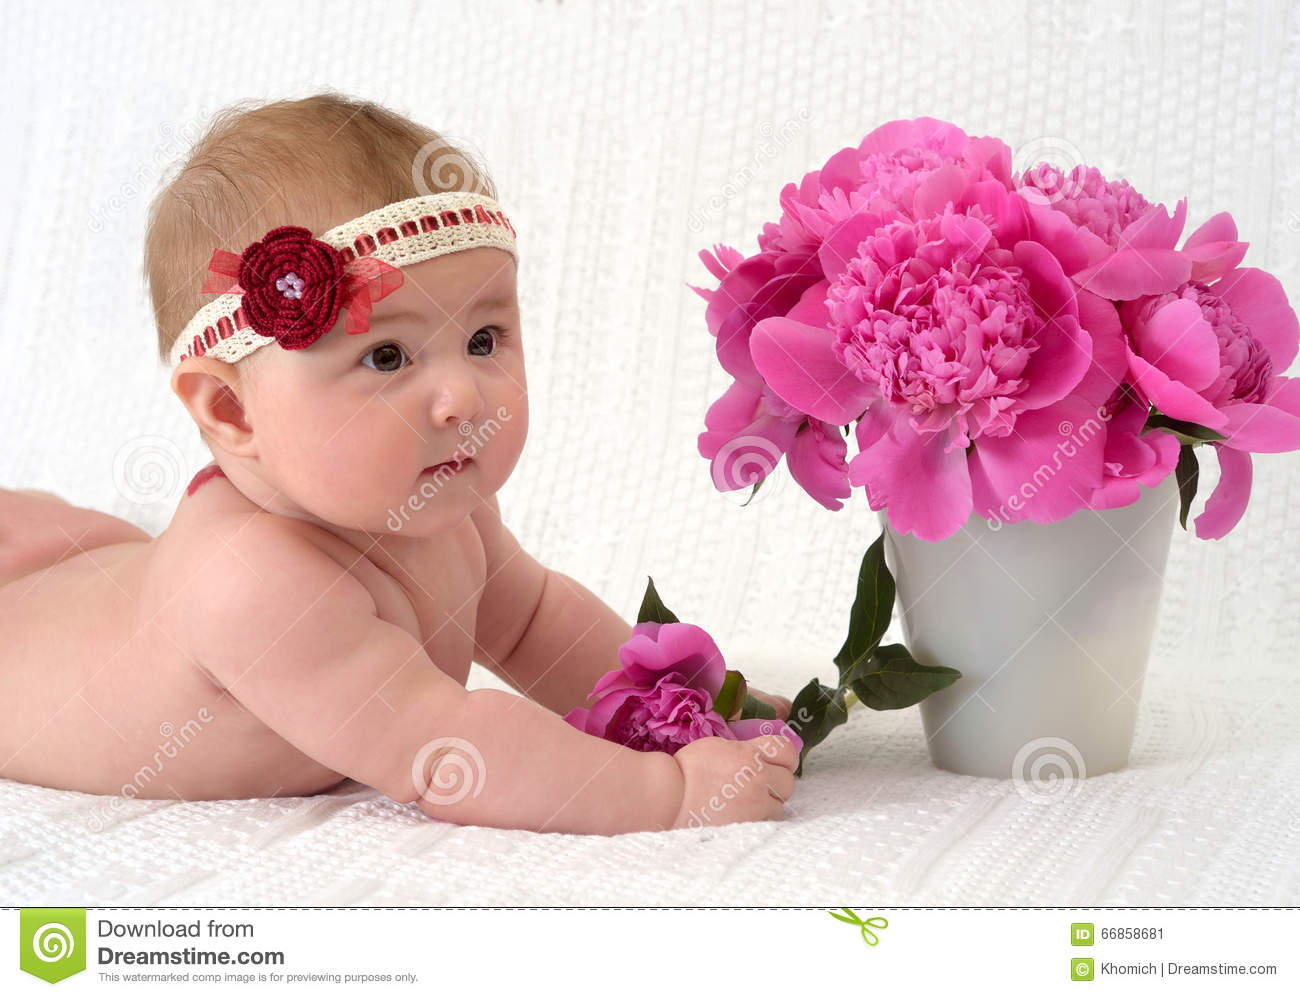 Cute Baby Girl With Flowers Stock Image - Image: 66858681